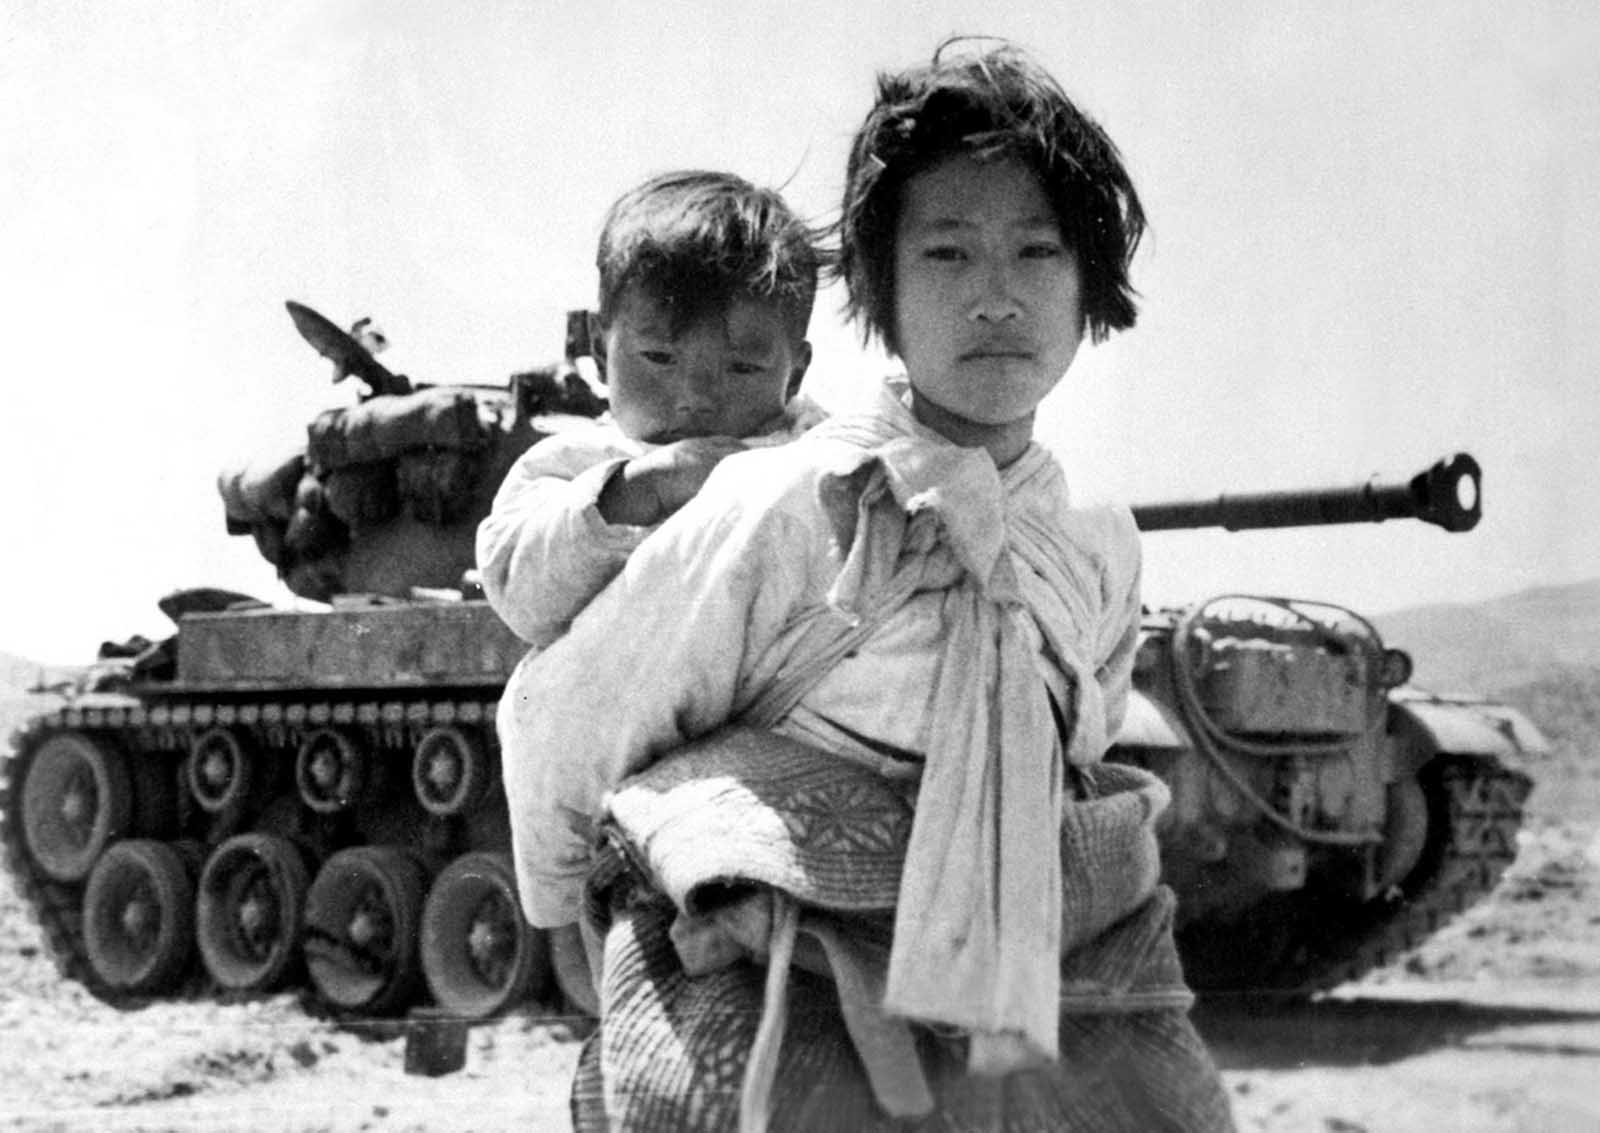 With her brother on her back, a war-weary Korean girl trudges by a stalled M-26 tank, at Haengju, Korea. on June 9, 1951.